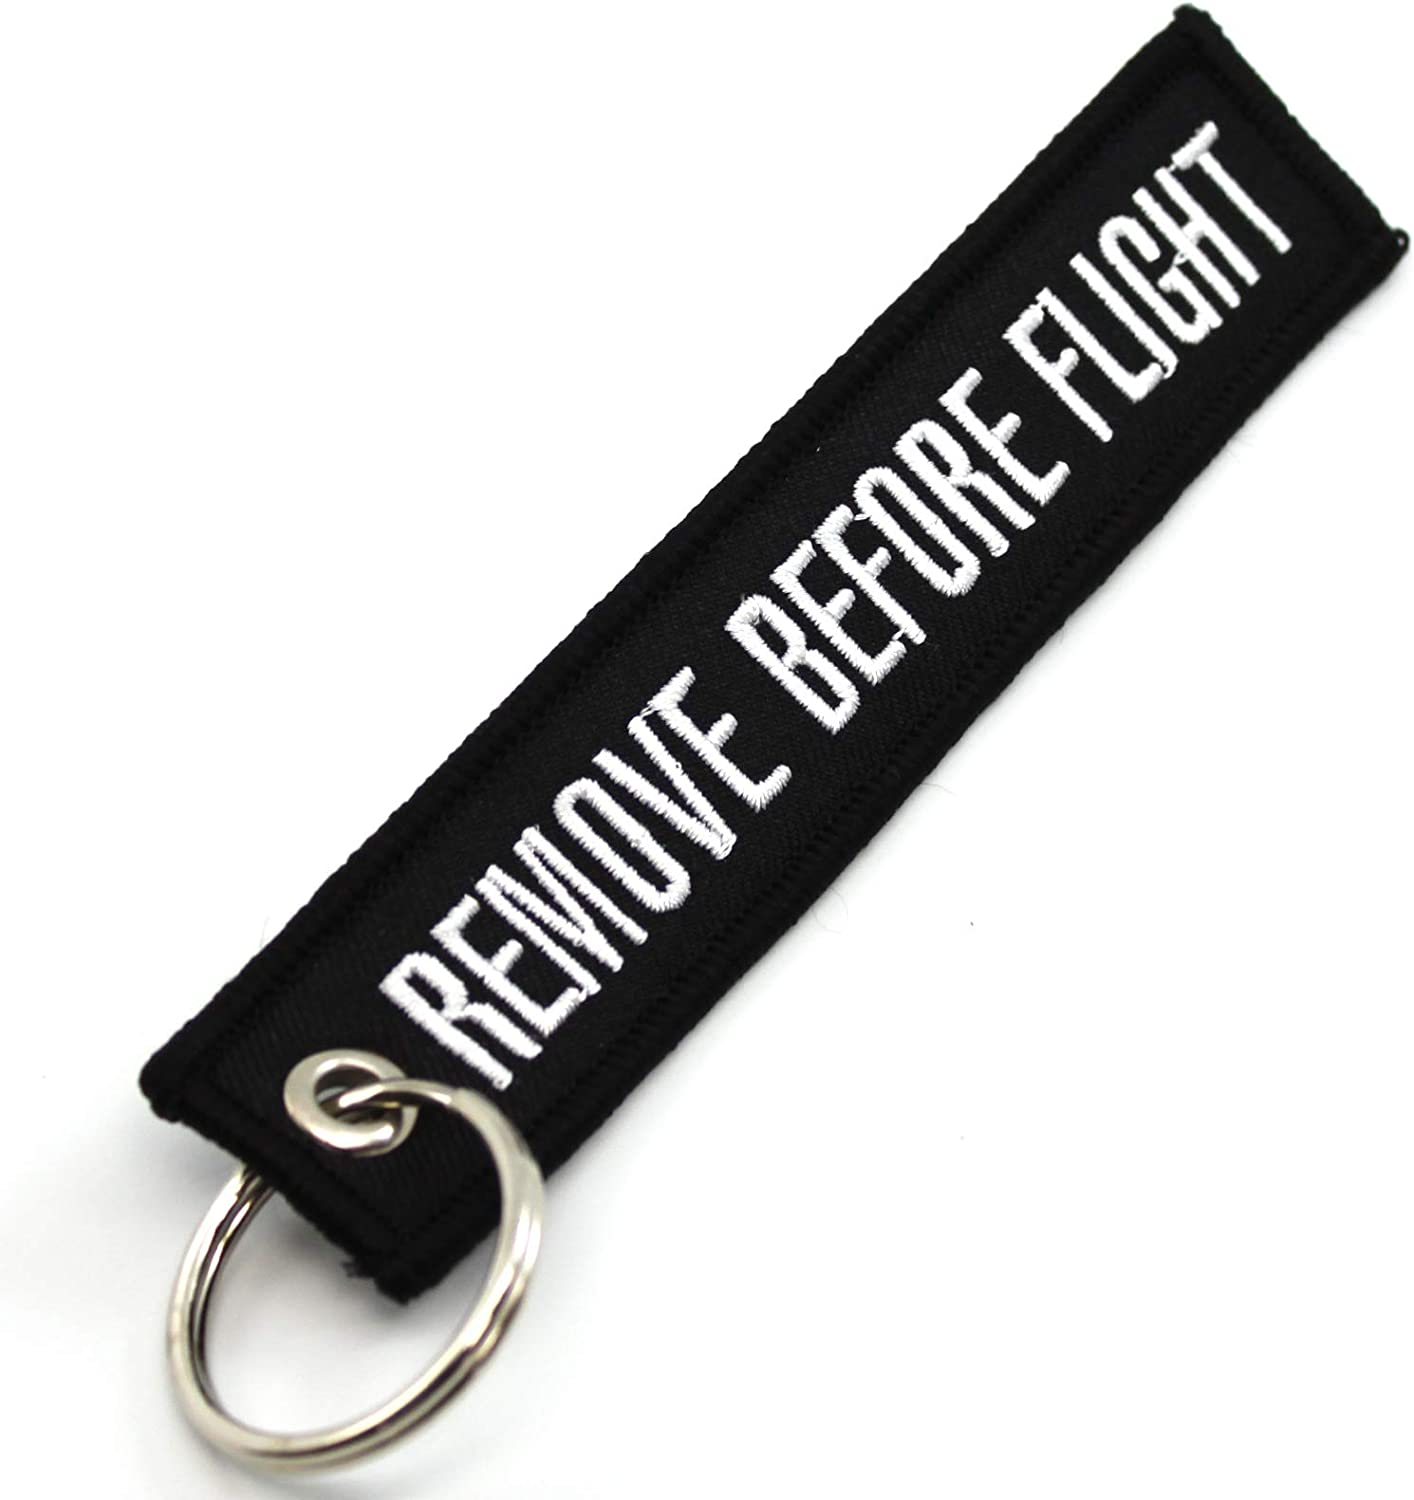 Remove Before Flight - Key Chain - Black at Amazon Men's Clothing store:  Automotive Key Chains